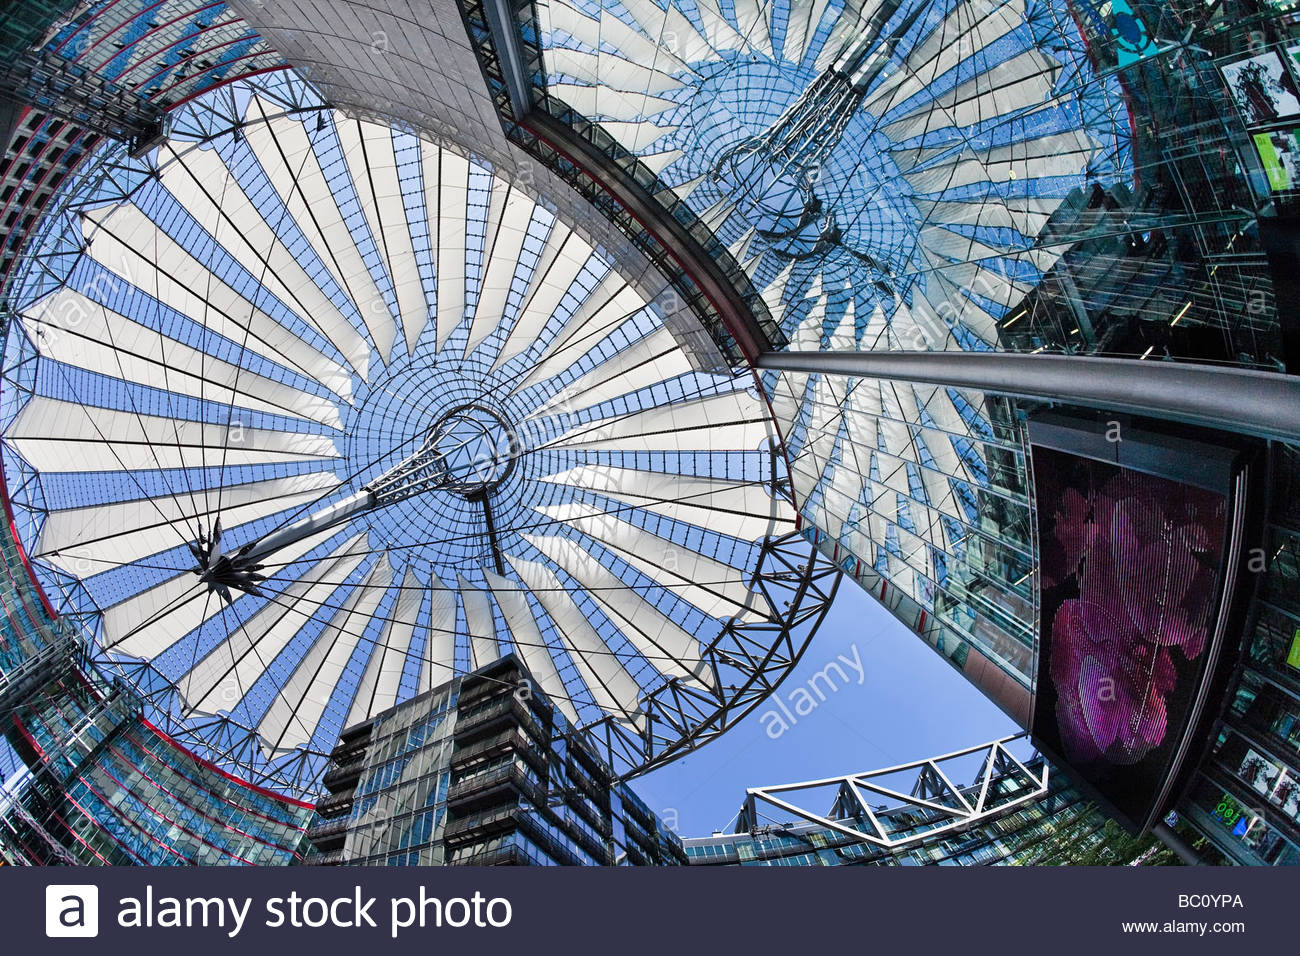 Glas Dach, Sony-Center, Berlin, Deutschland Stockbild